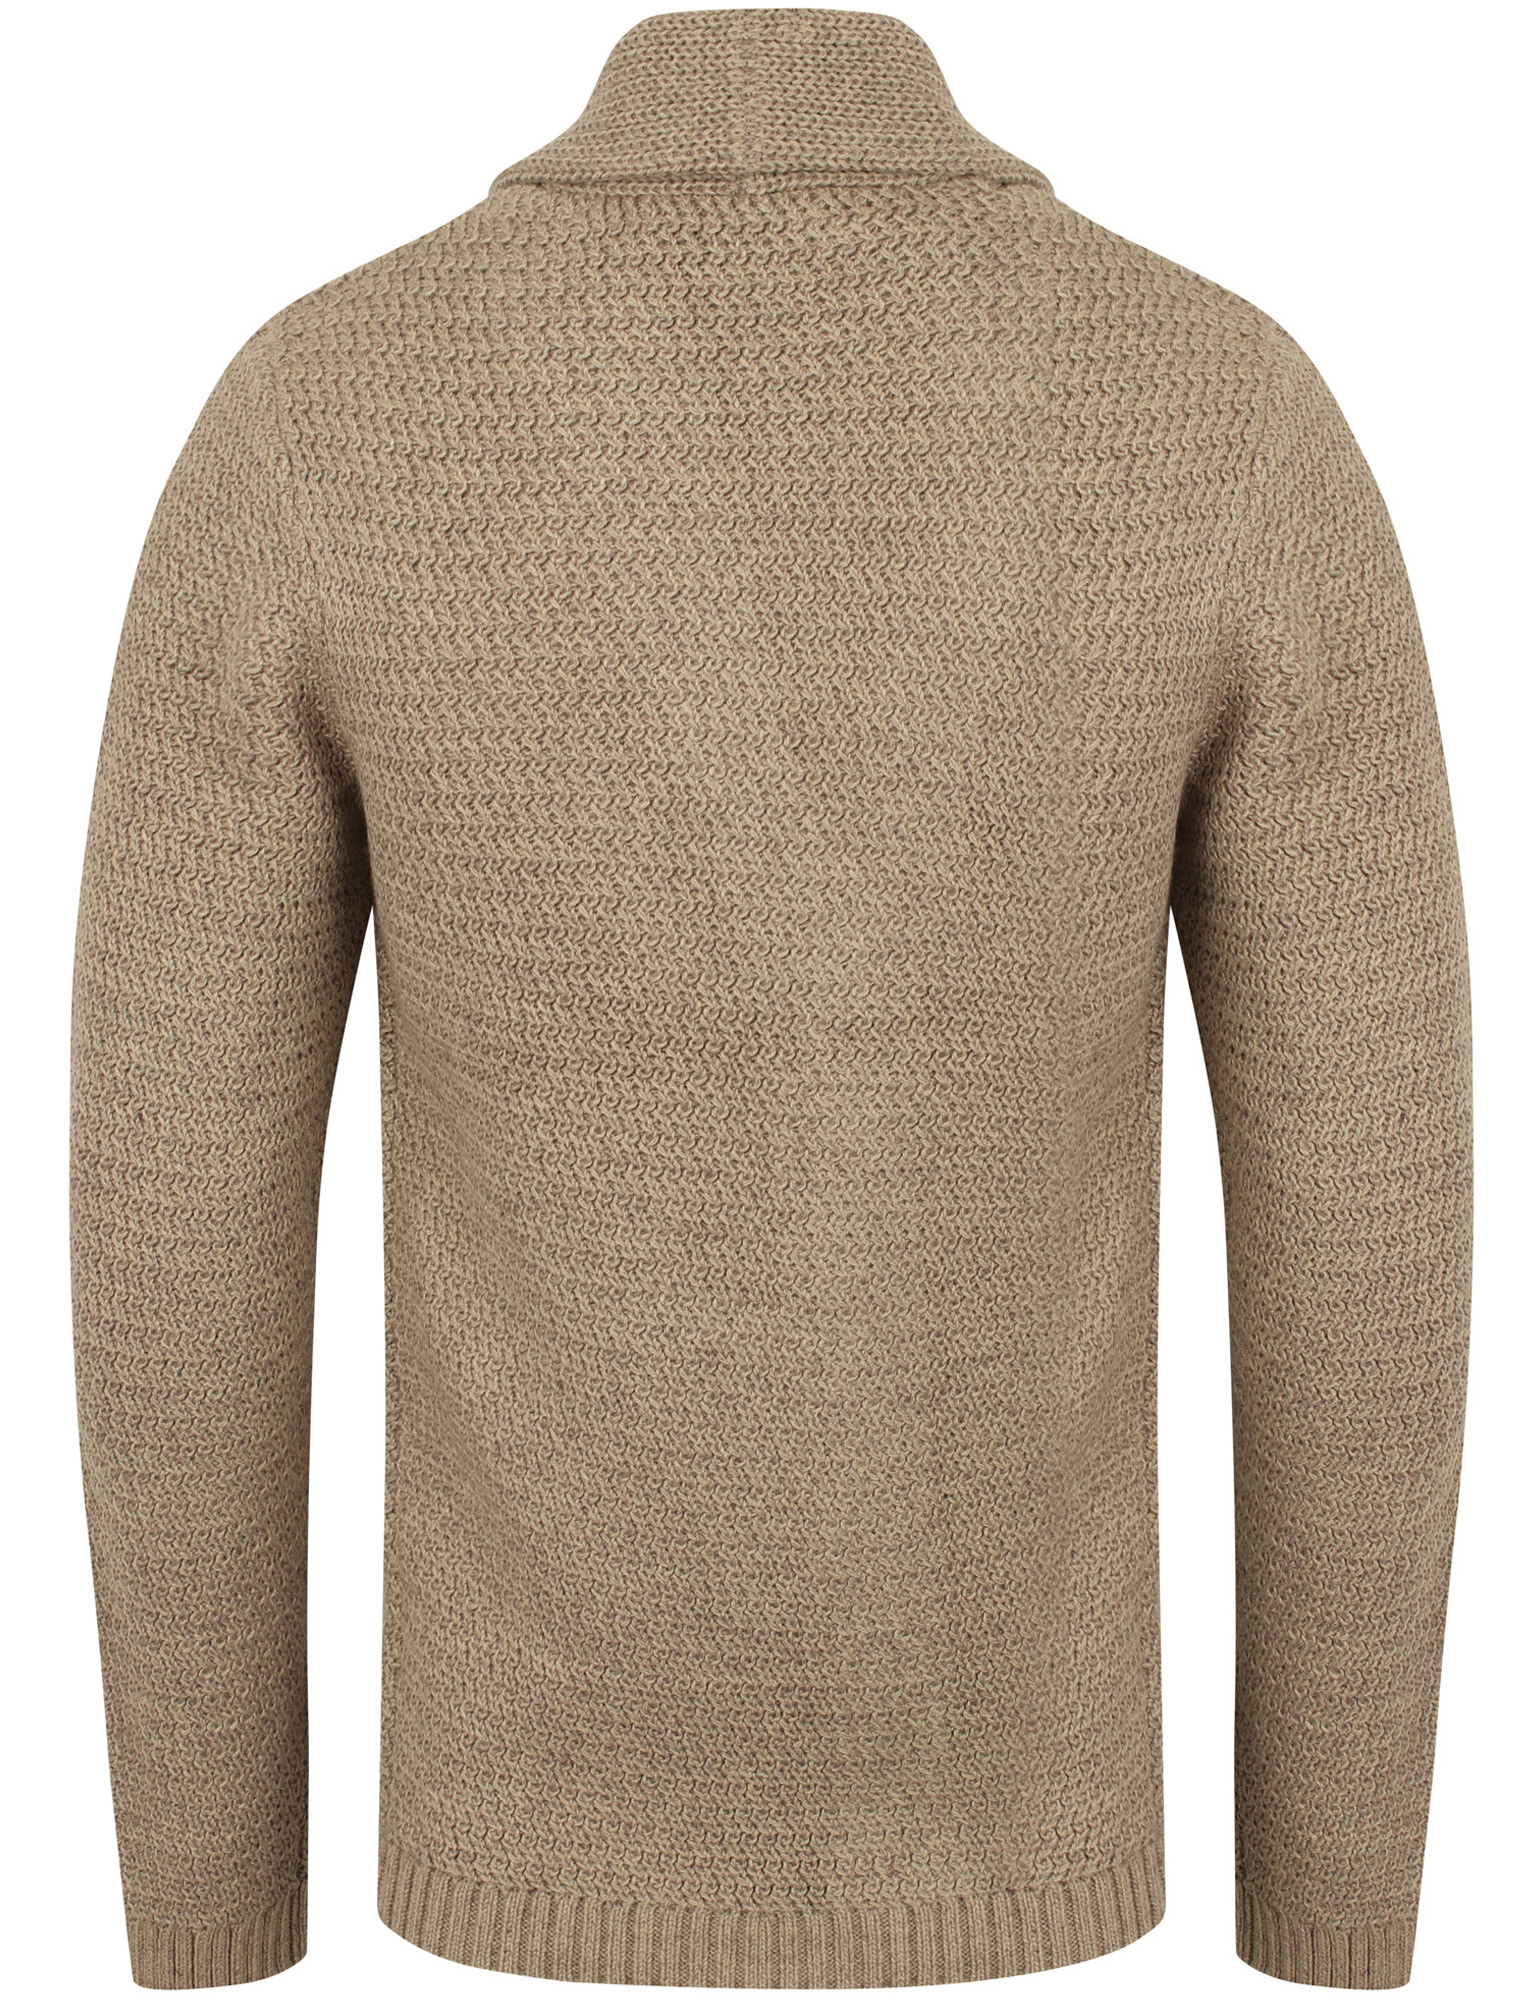 New-Mens-Tokyo-Laundry-Shawl-Neck-Long-Sleeve-Wool-Blend-Cardigans-Size-S-XXL thumbnail 26